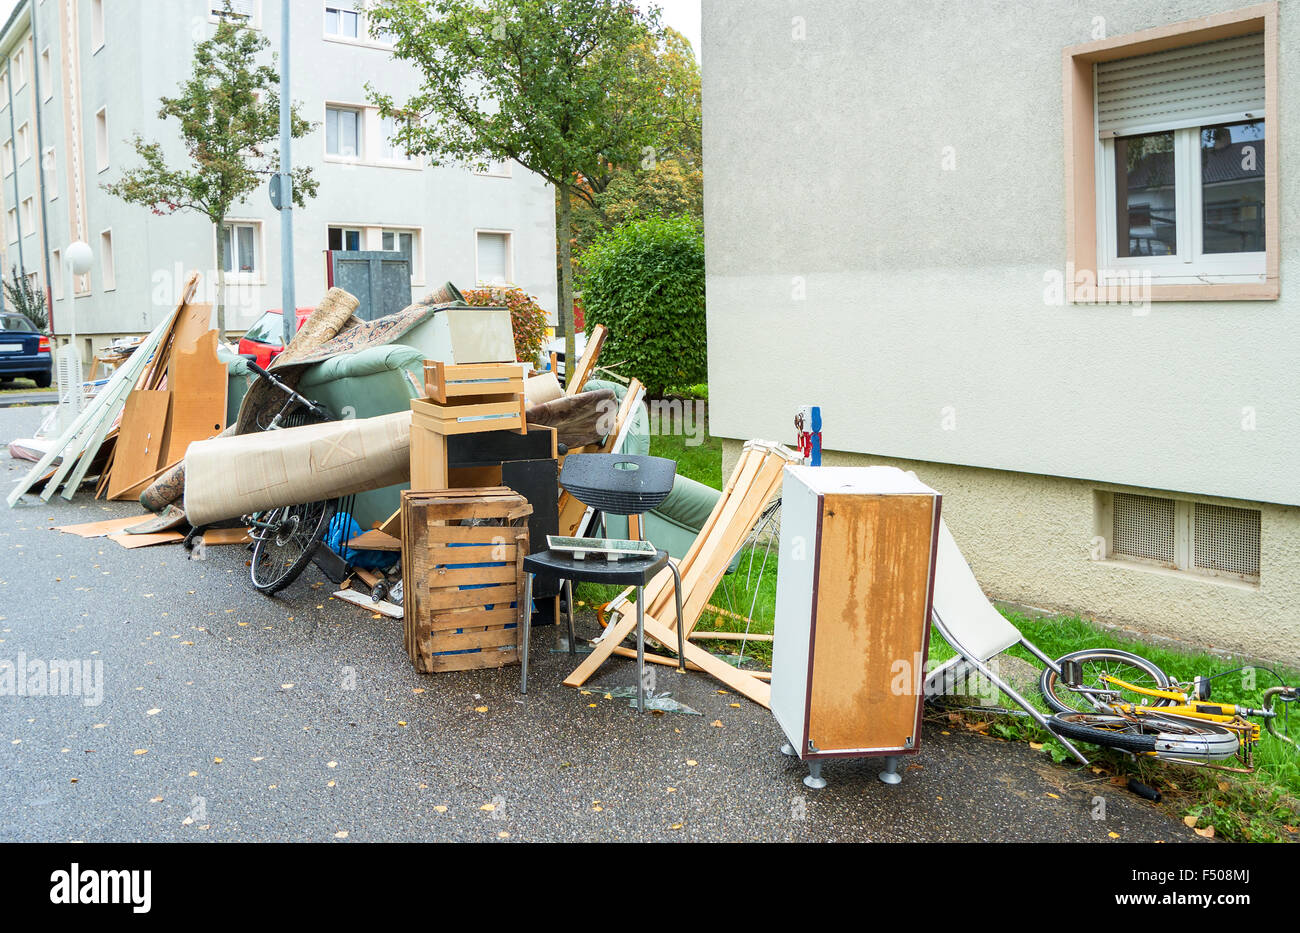 Big Pile Of Old Broken Furniture Stock Photo 89131970 Alamy